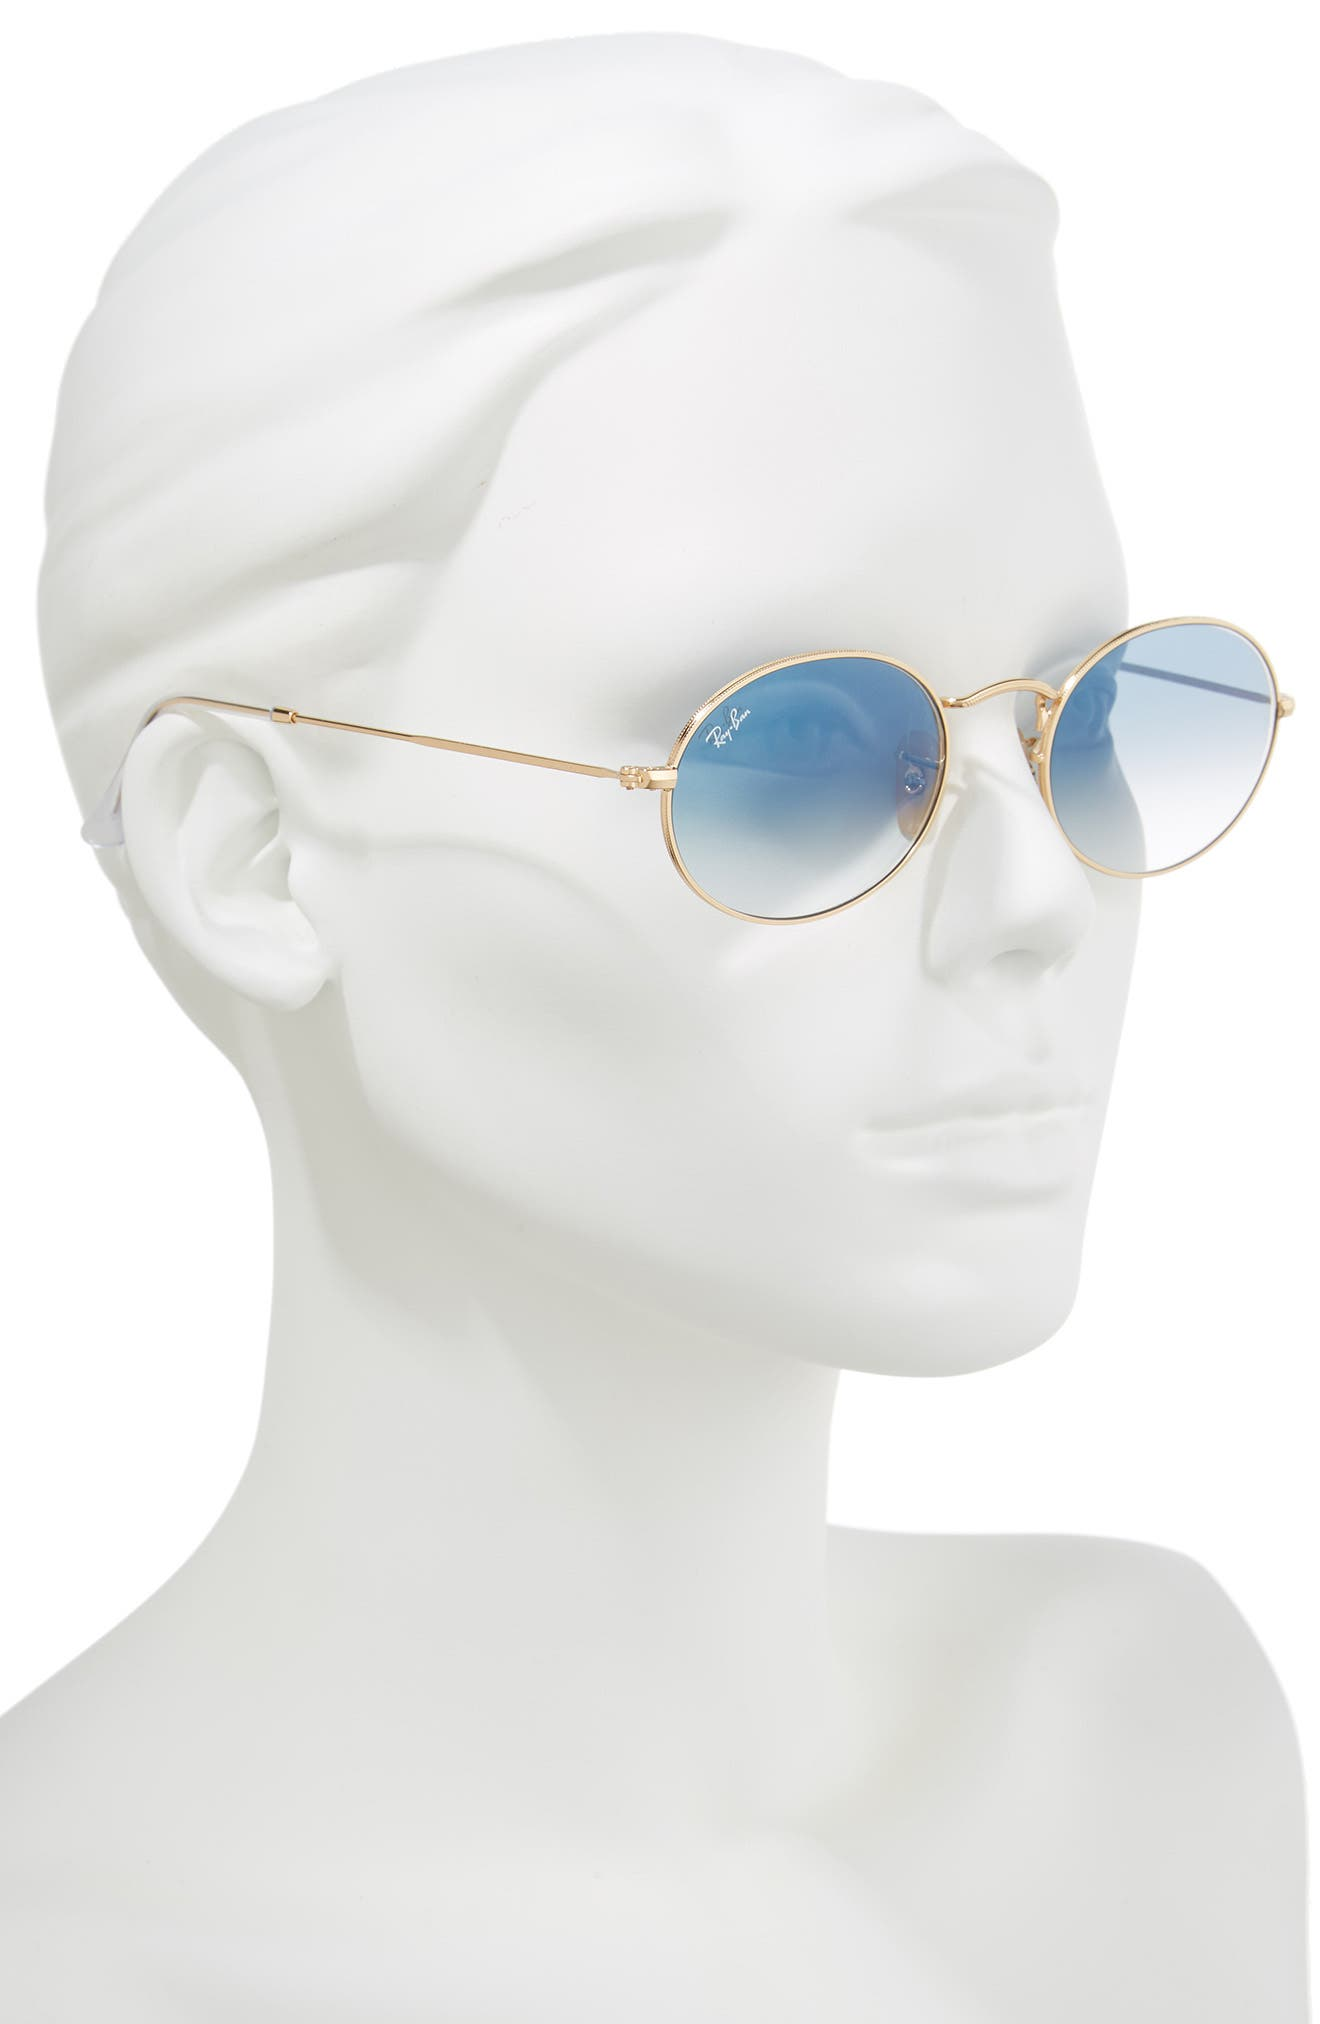 54mm Oval Sunglasses,                             Alternate thumbnail 2, color,                             Gold